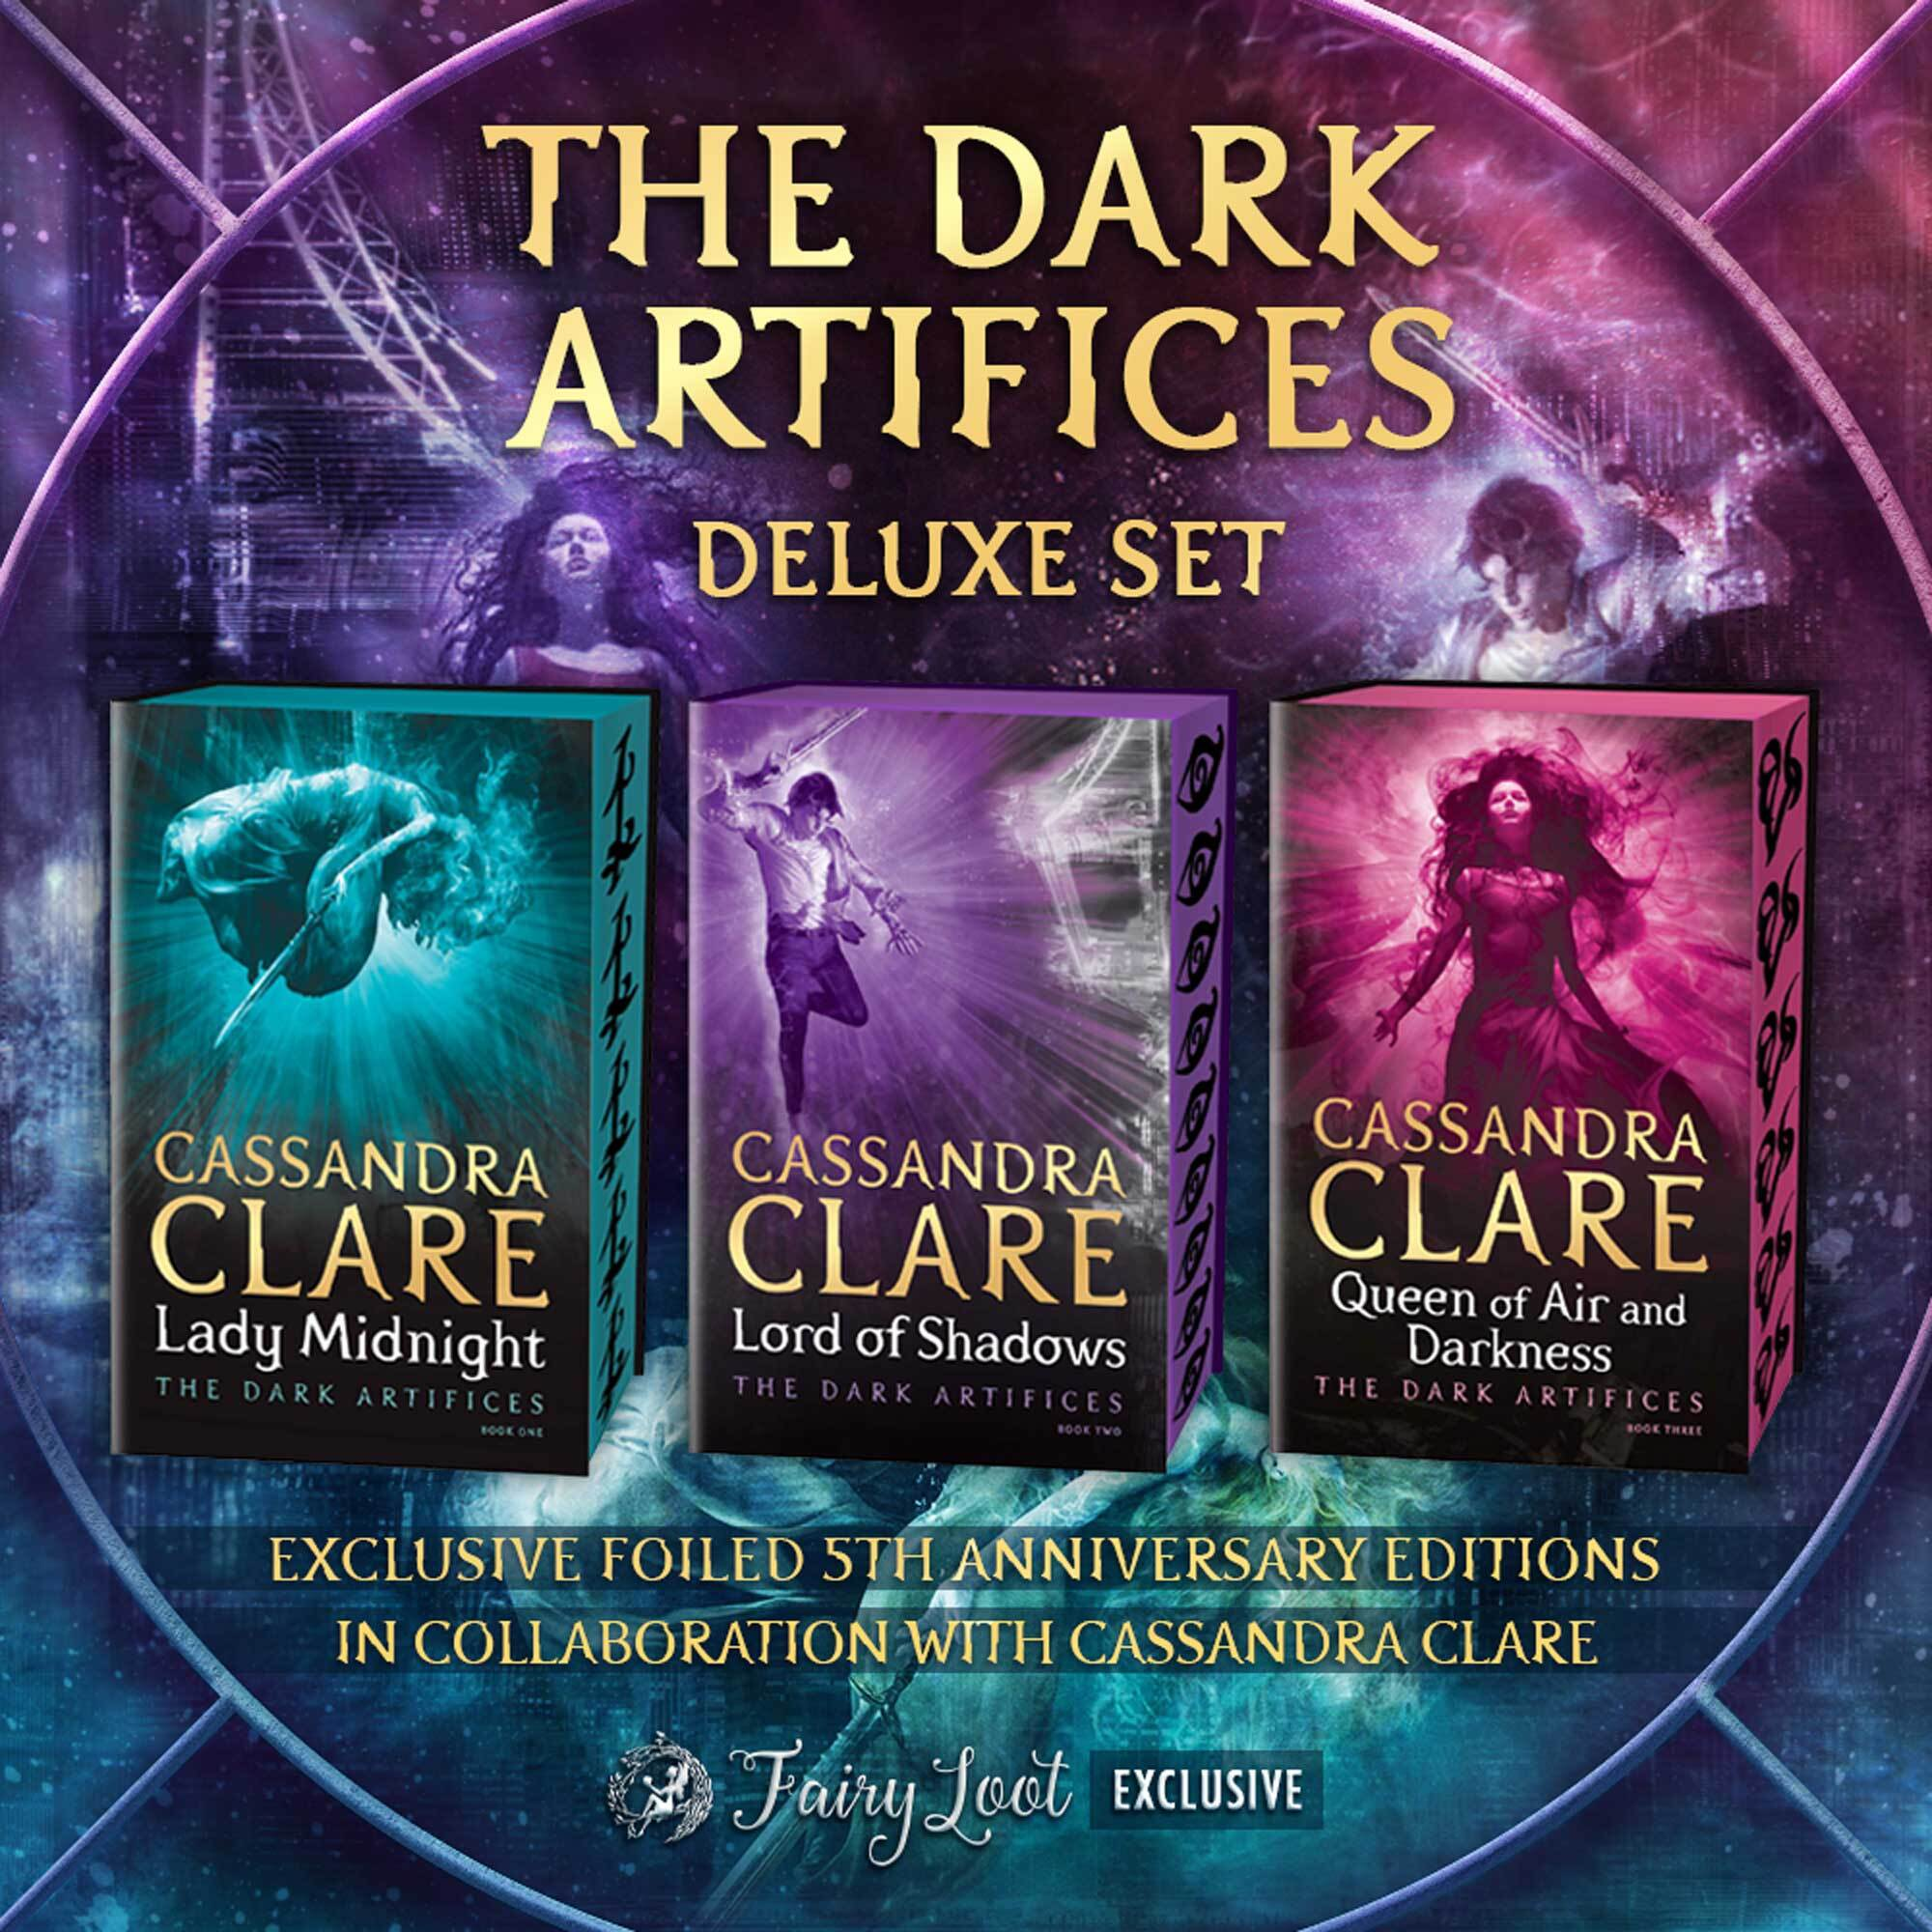 The Dark Artifices DELUXE SET